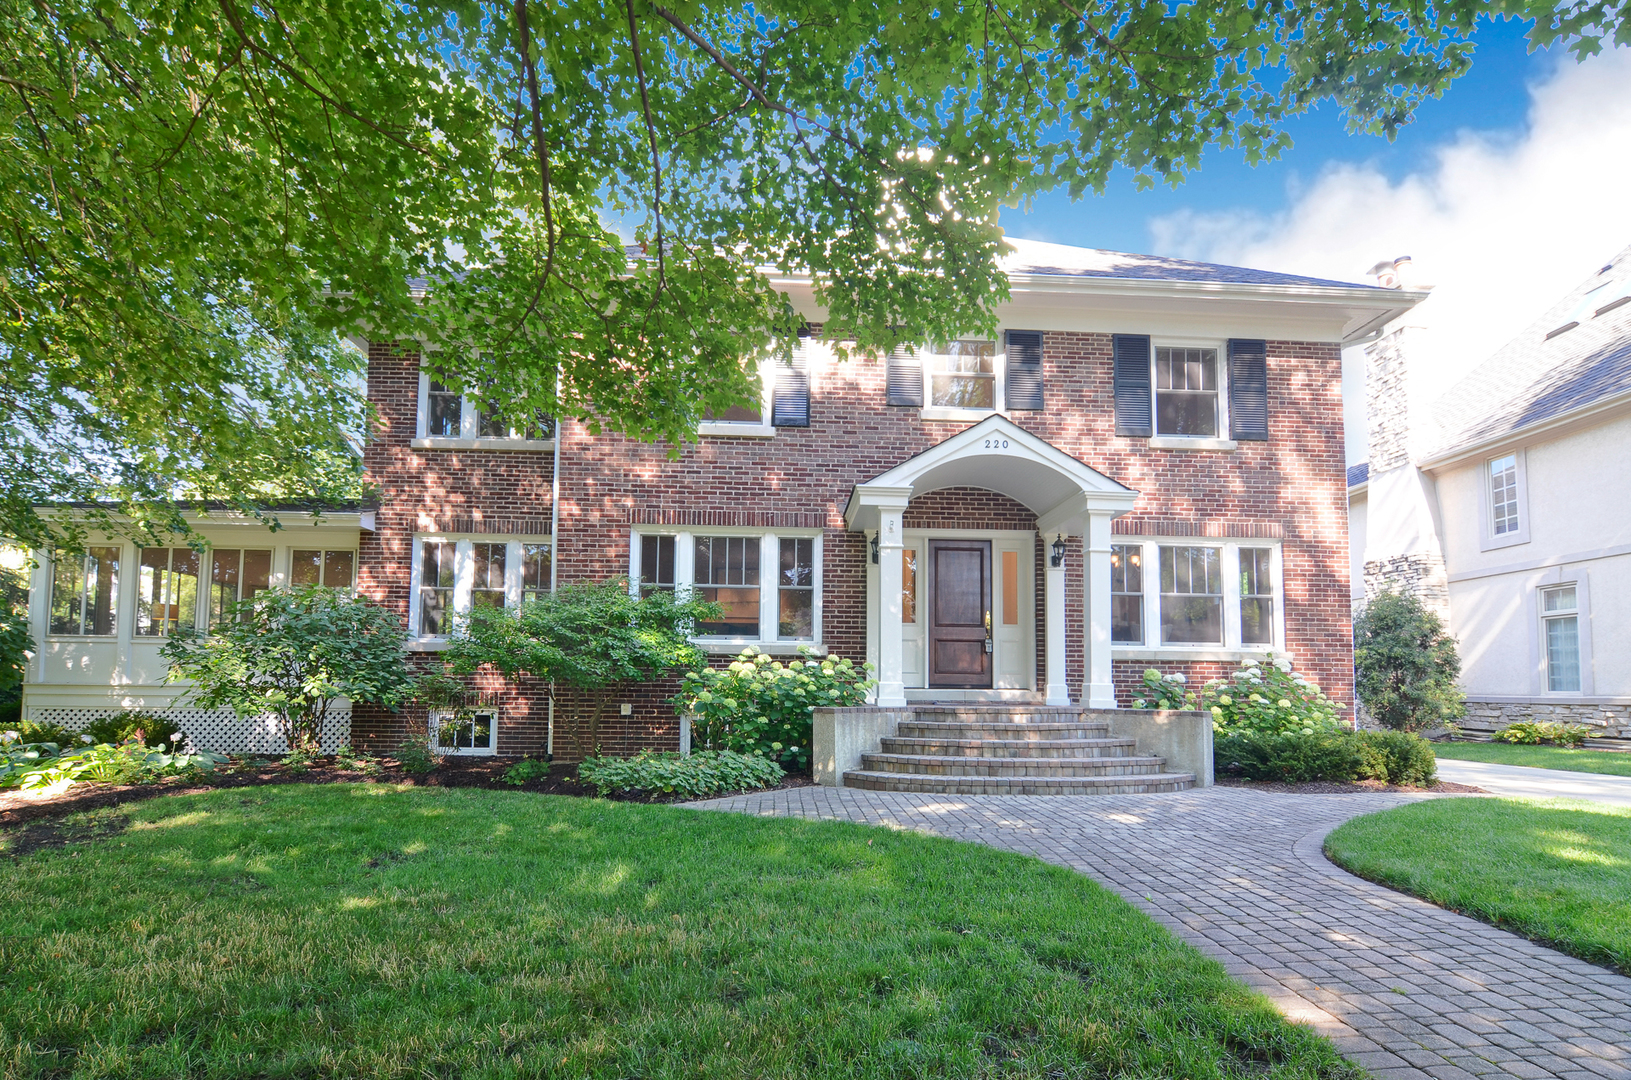 220 North Lincoln Street, Hinsdale, IL - USA (photo 1)